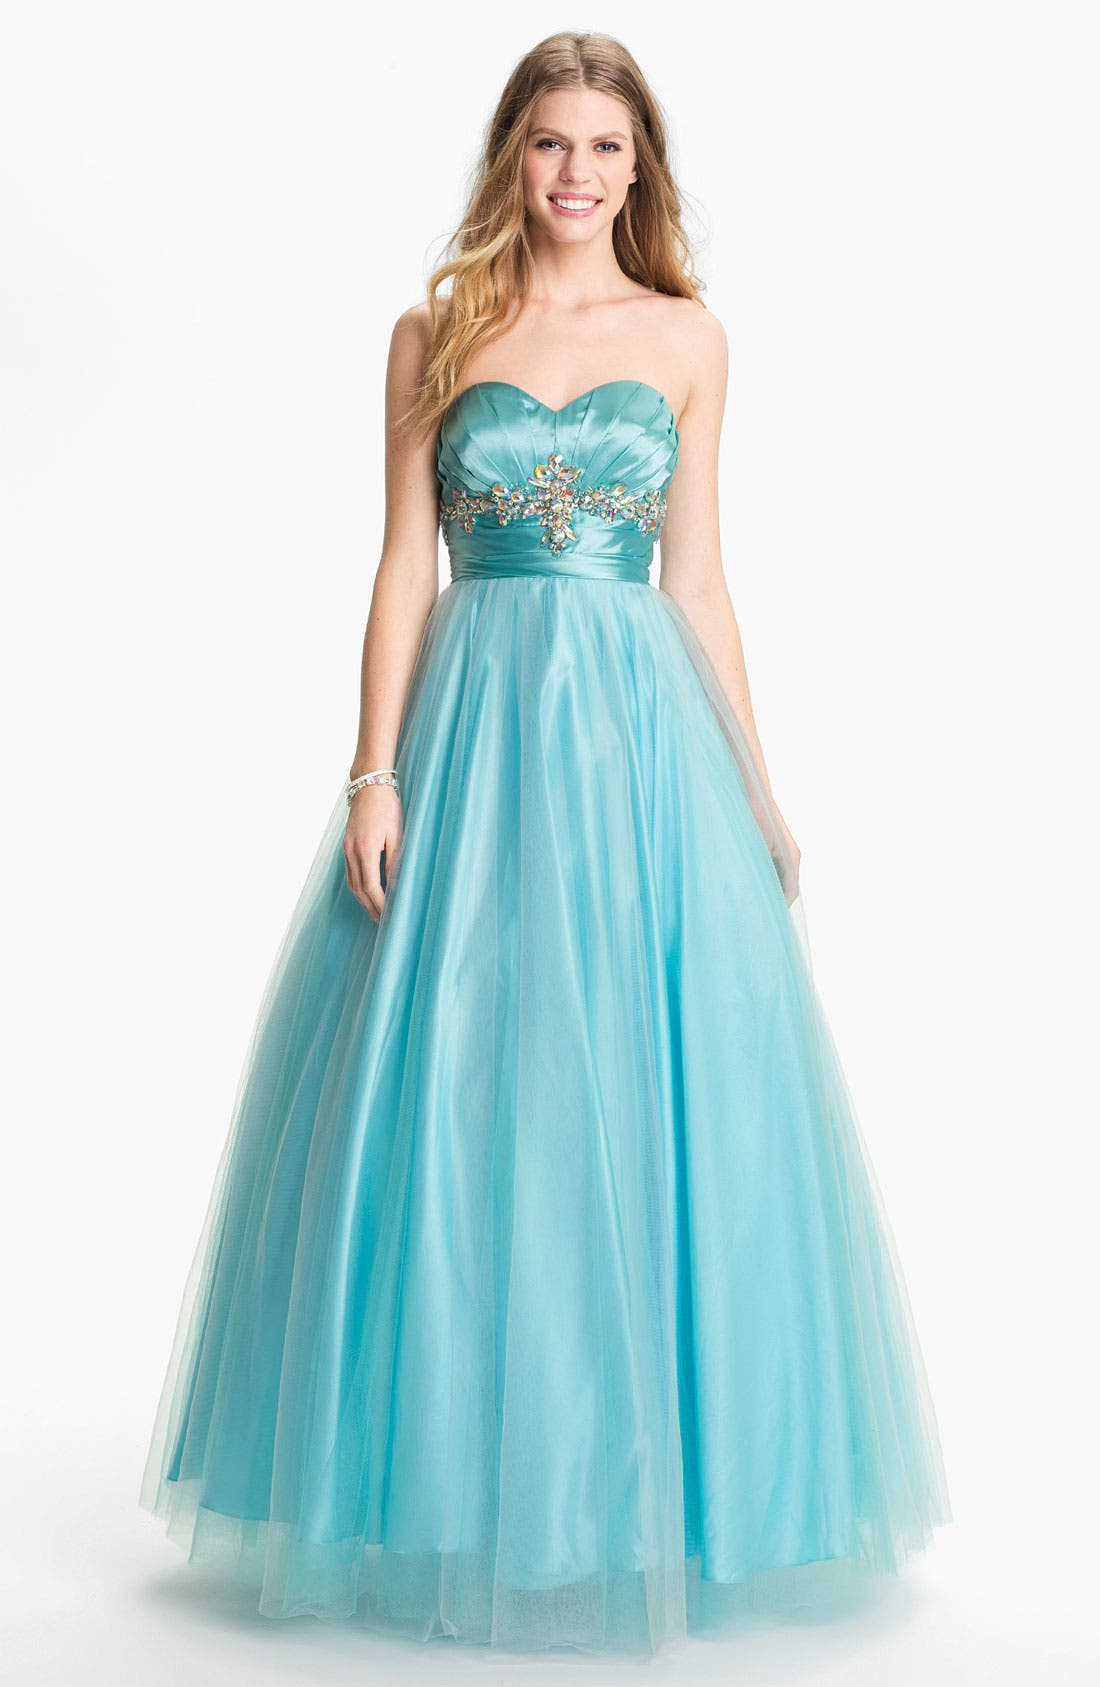 Alternate Image 1 Selected - Sean Collection 'Princess' Embellished Satin & Tulle Ballgown (Online Exclusive)